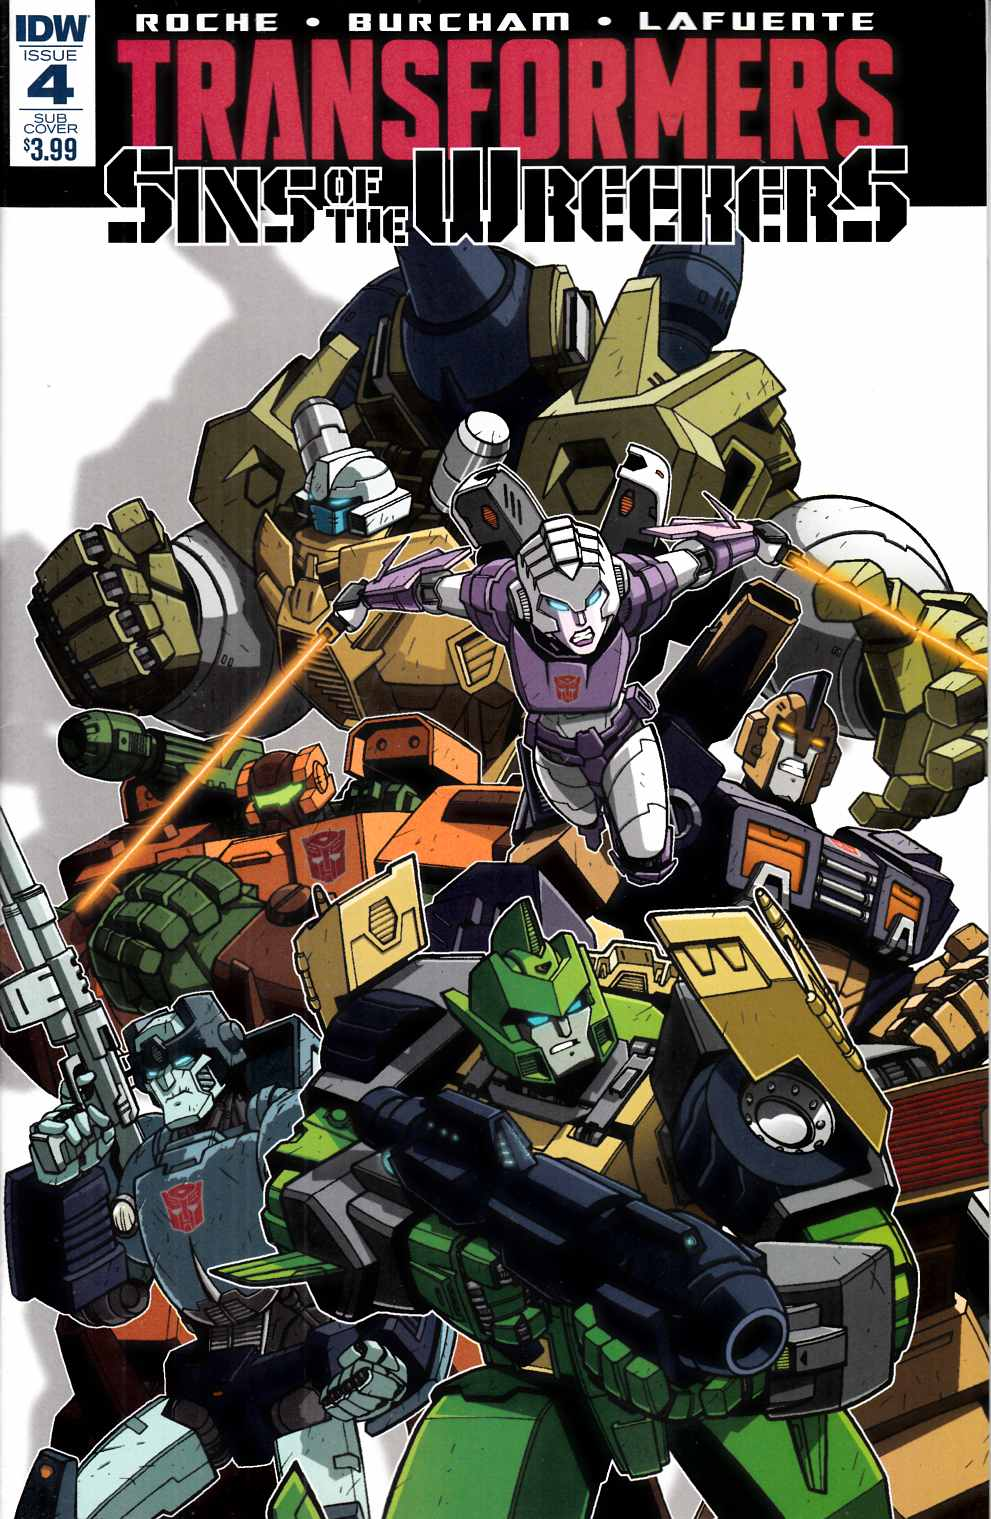 Transformers Sins of Wreckers #4 Subscription Cover [IDW Comic] THUMBNAIL